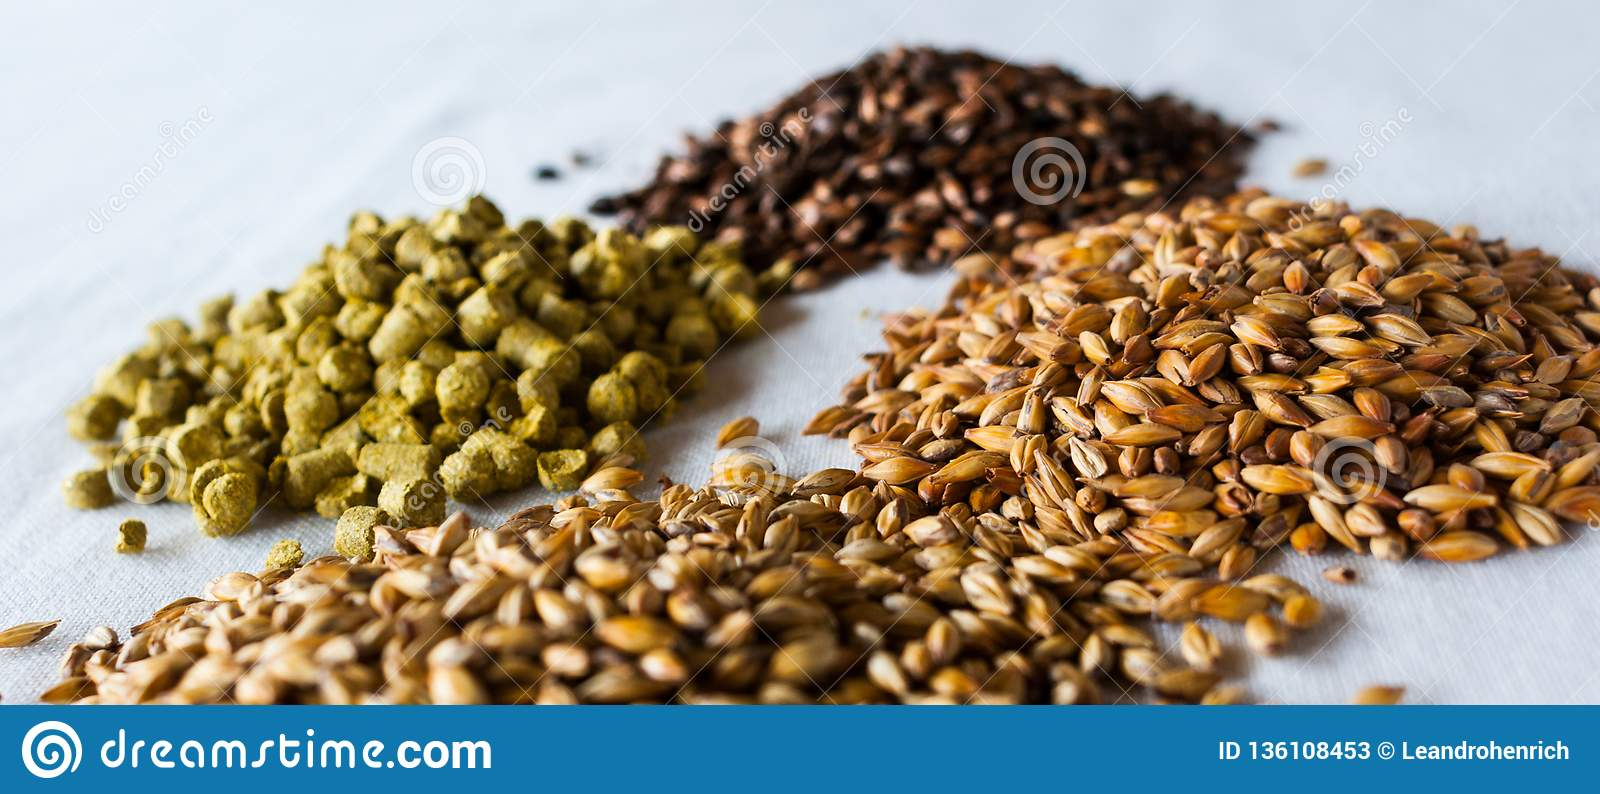 The beer components over a white background